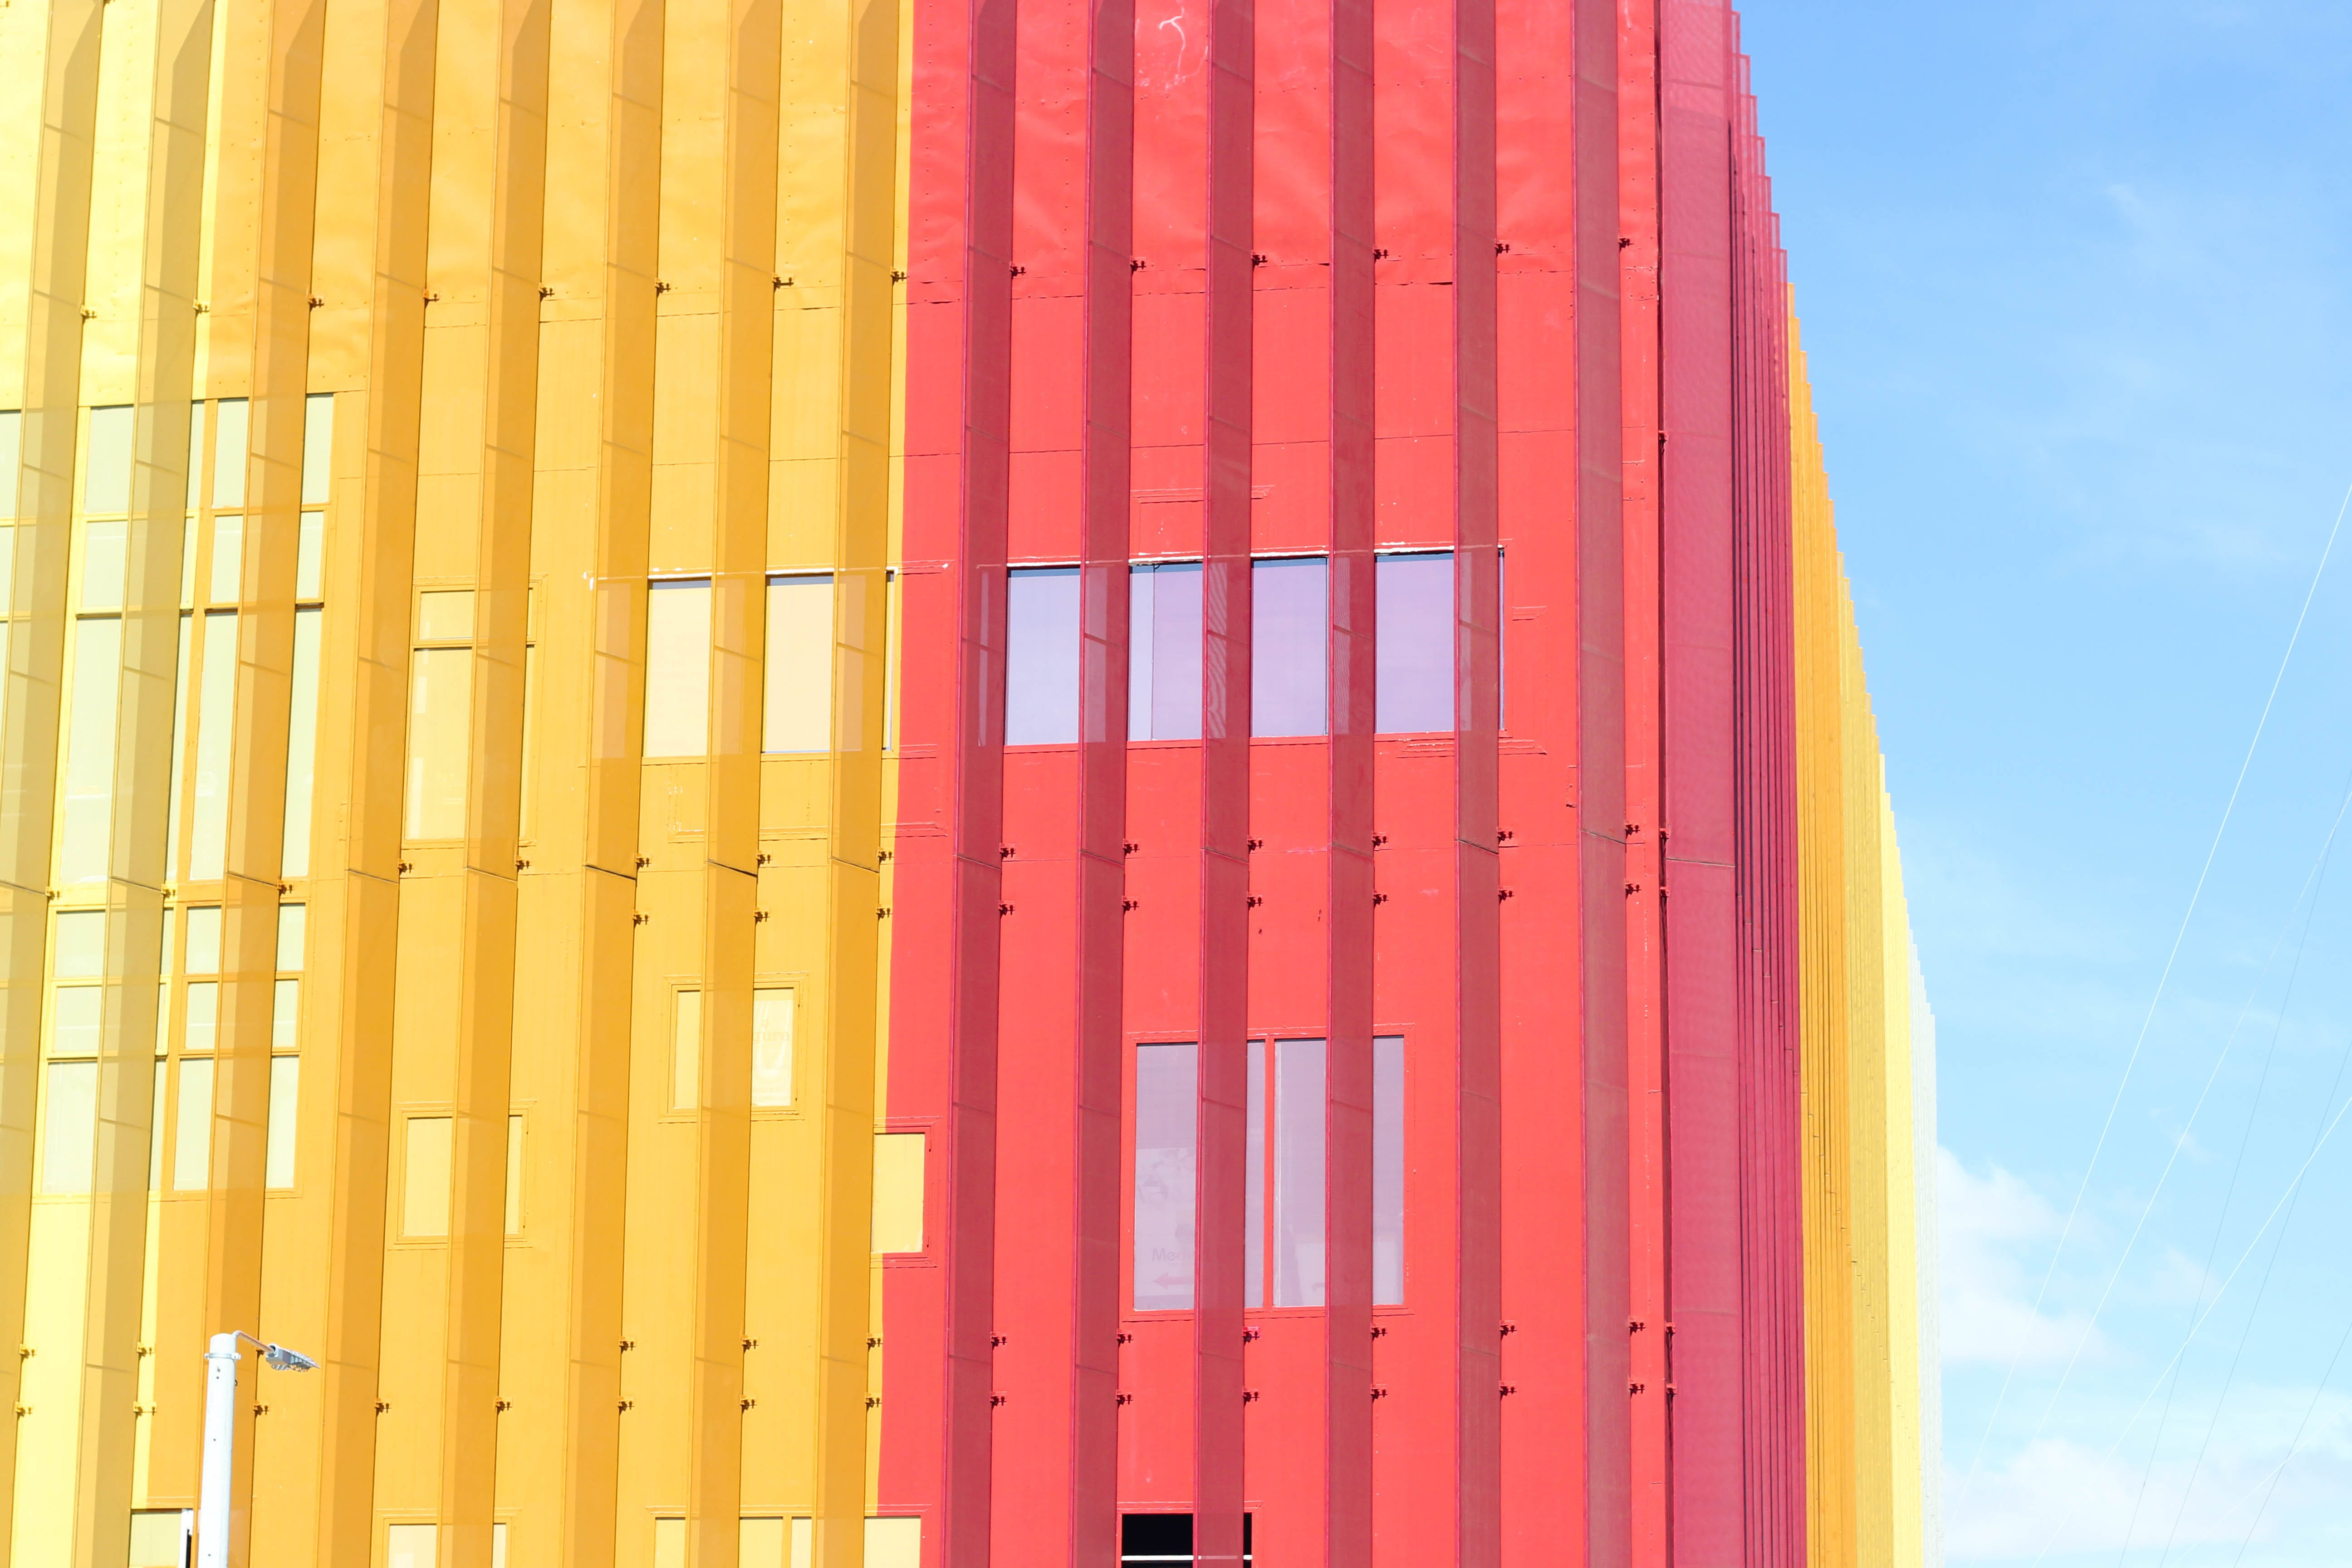 Red and Yellow Building Facade